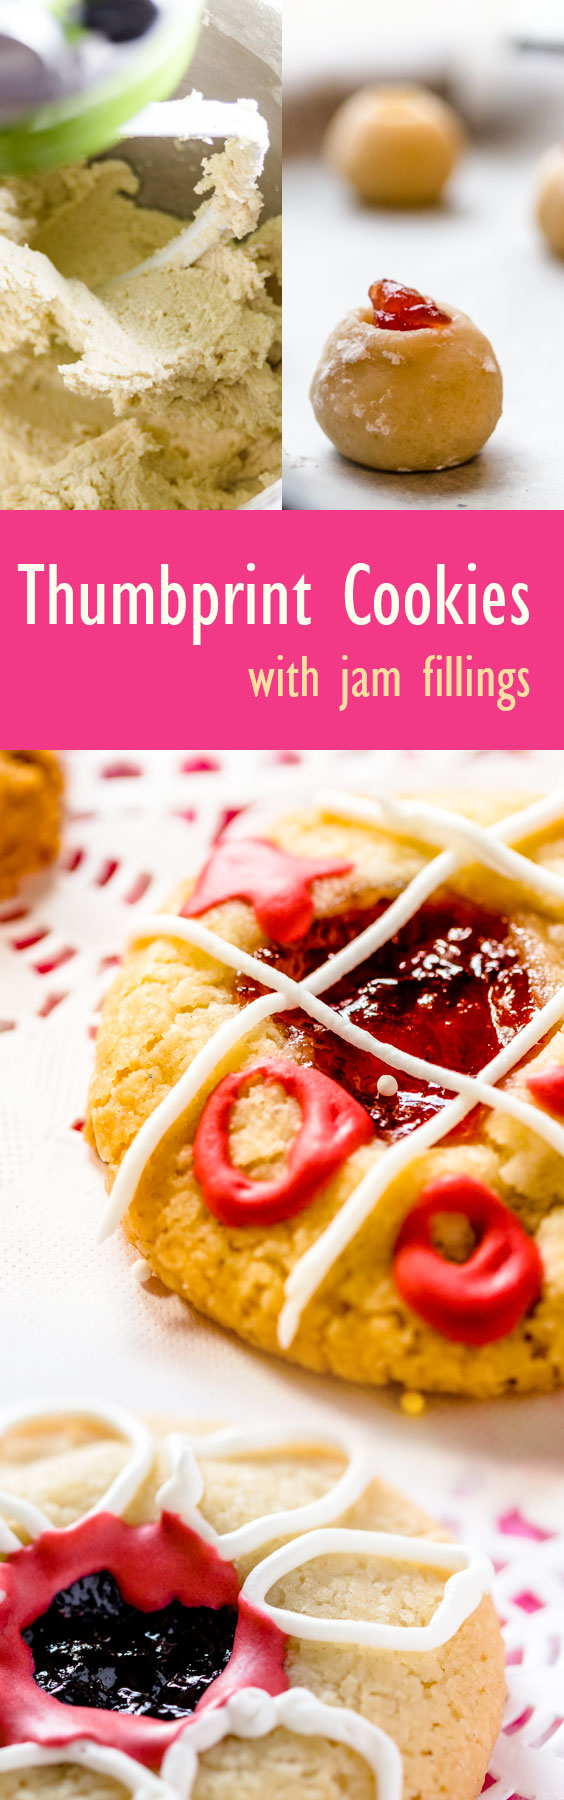 Easy short bread thumbprint recipe for your next holiday (Fill with jam)